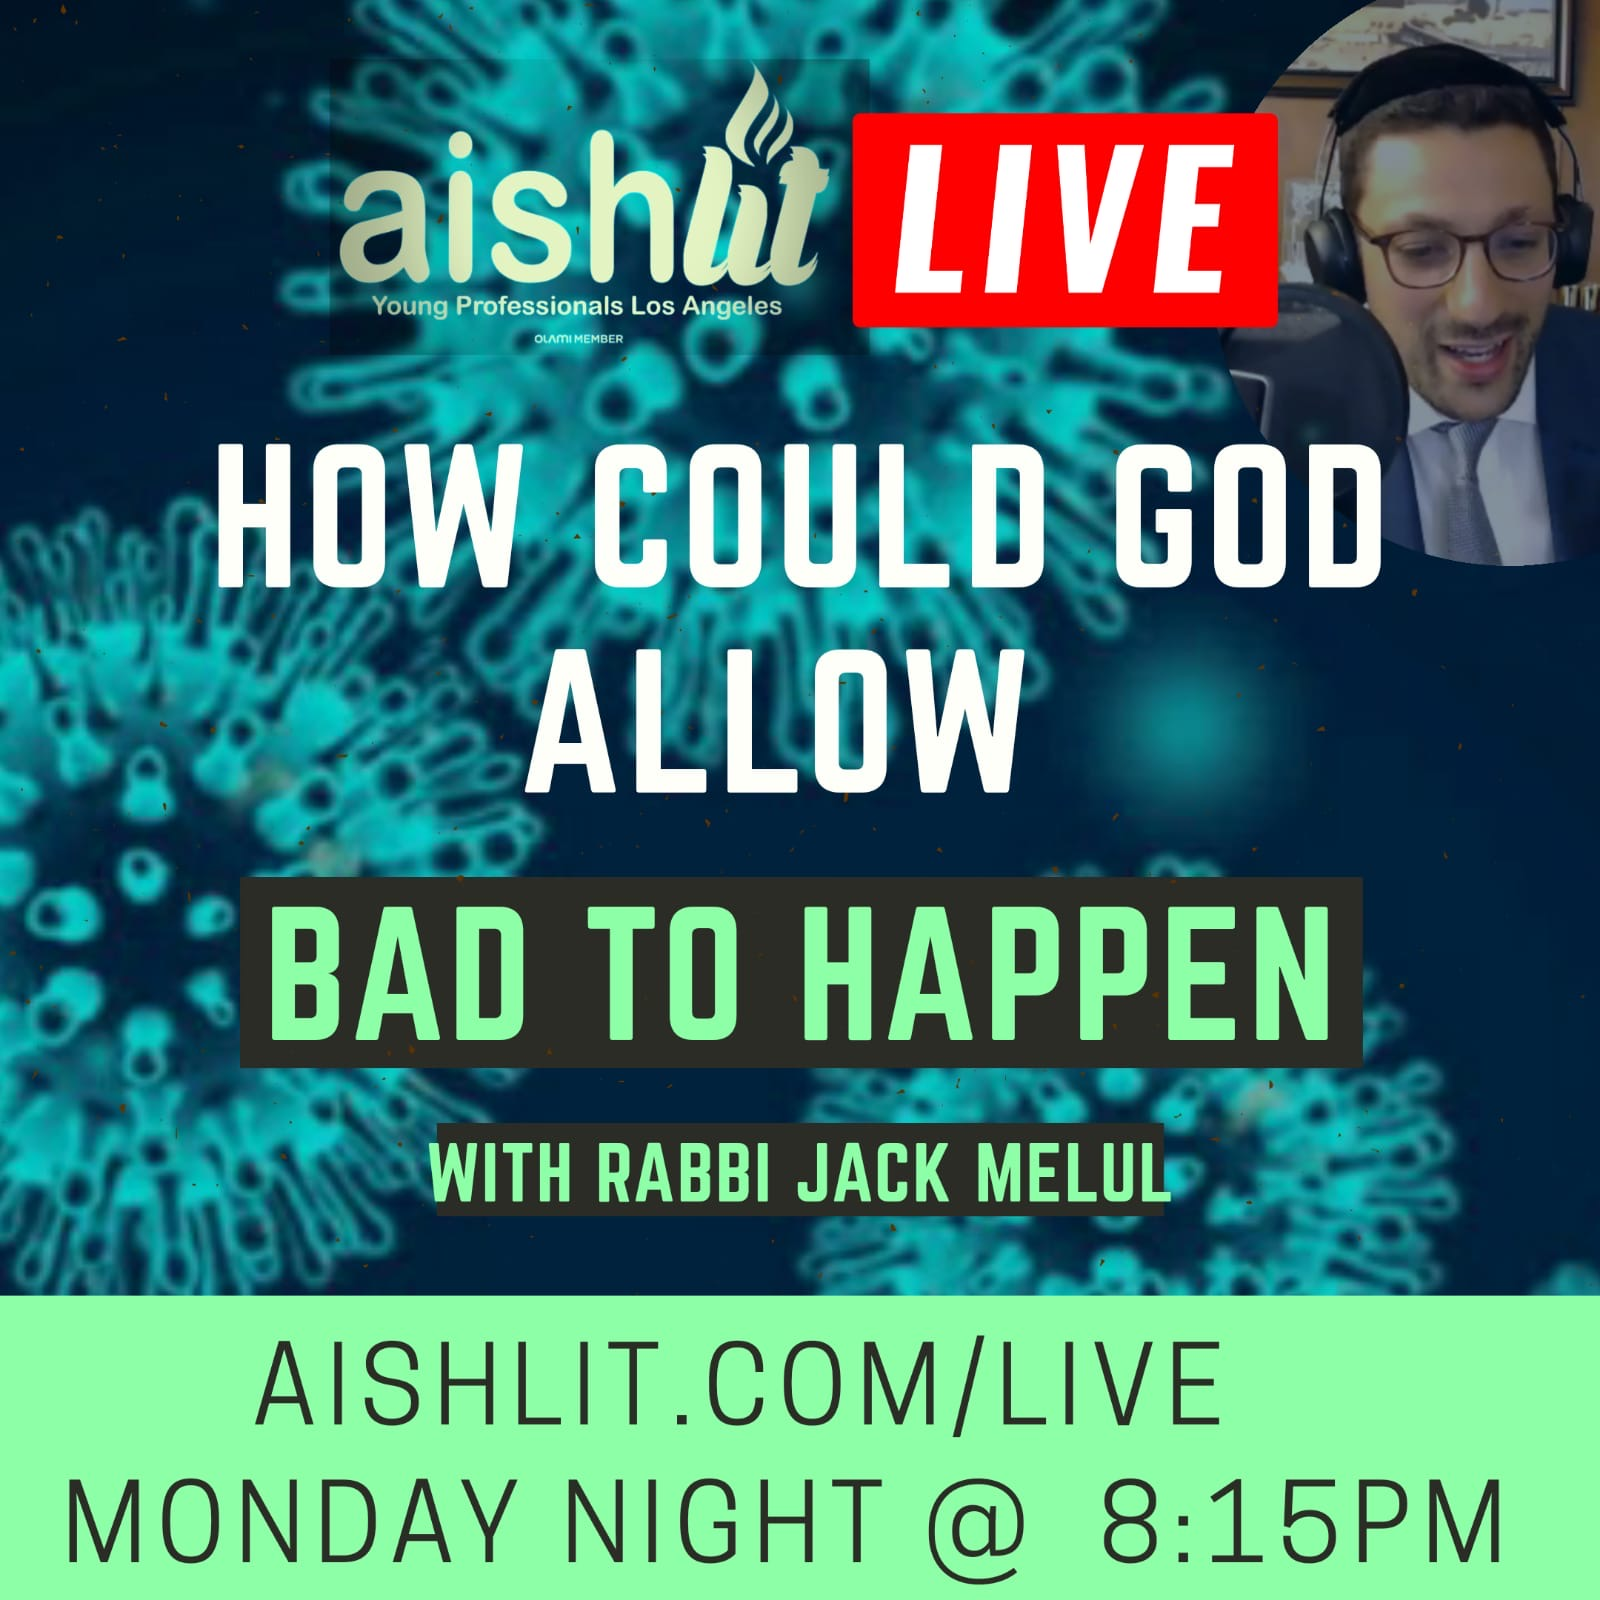 How Can God Allow Bad Things To Happen - AishLIT Website